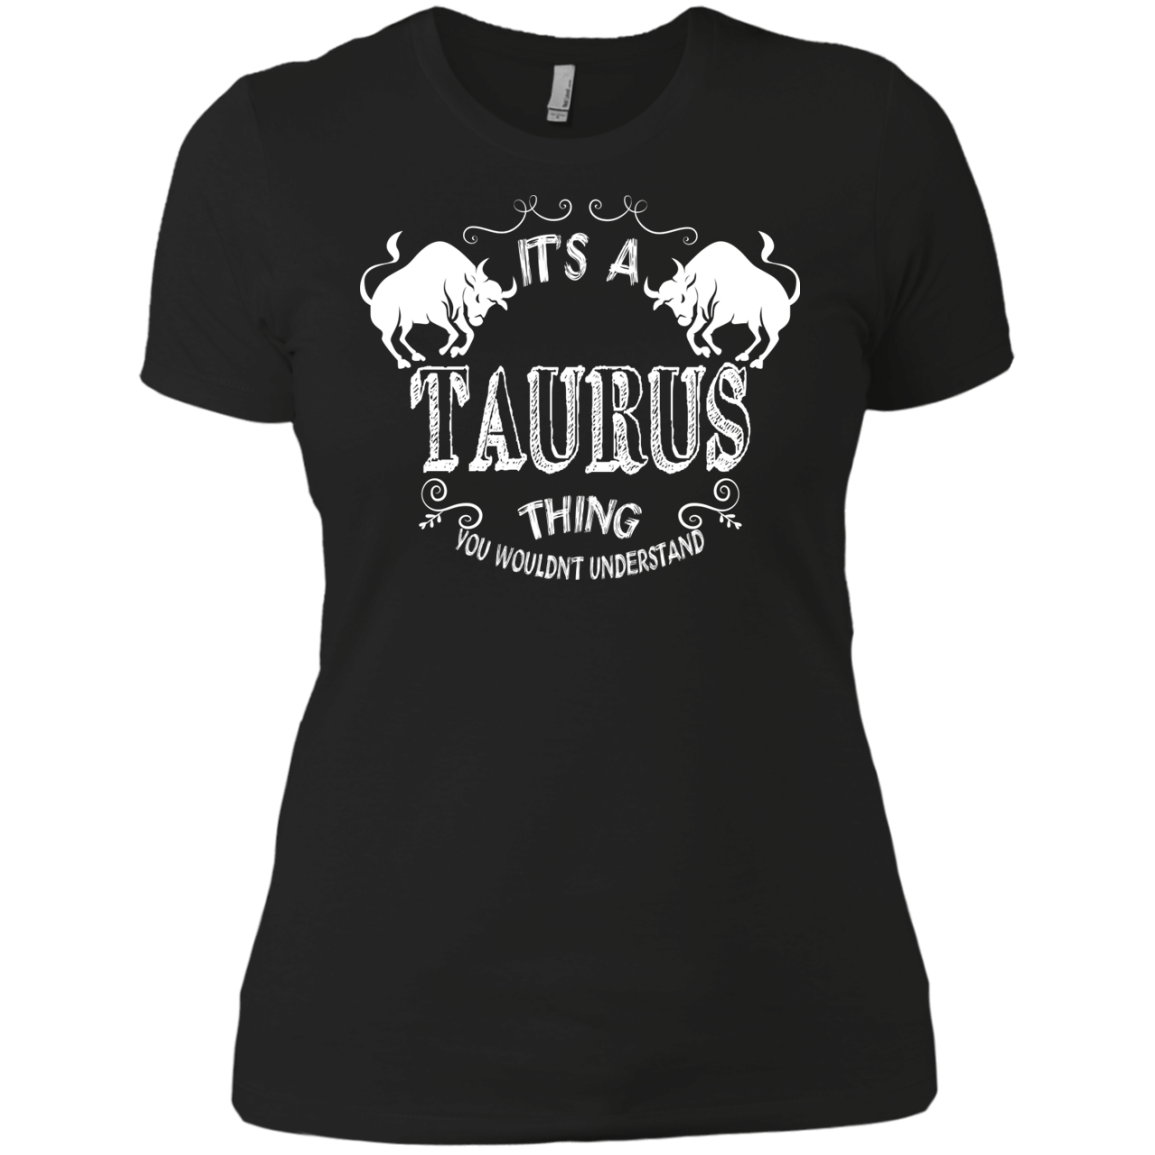 IT'S A TAURUS THING...YOU WOULDN'T UNDERSTAND - ZODIAC T SHIRT - The Sun Cat